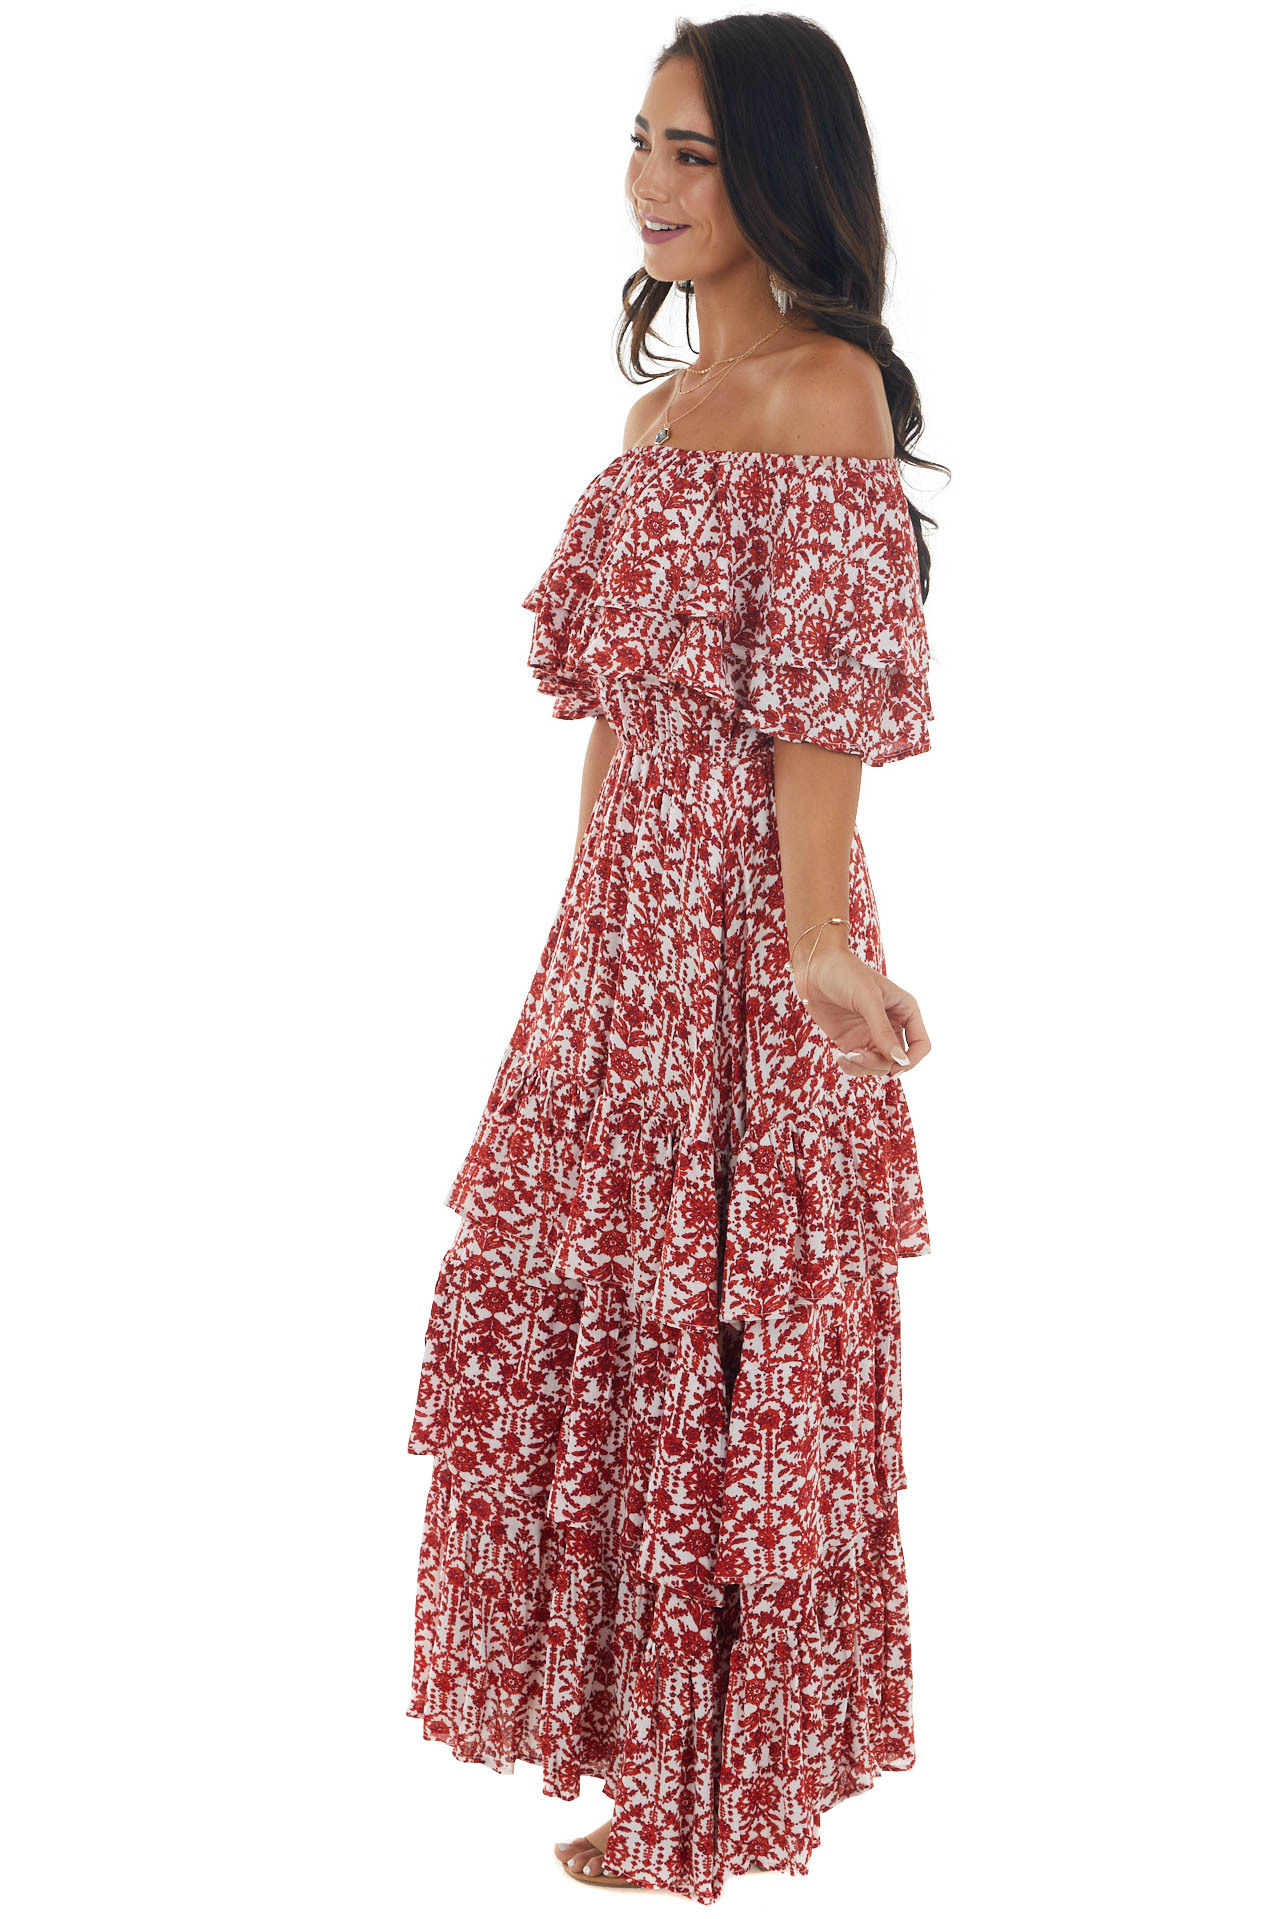 Ivory and Red Floral Off Shoulder Maxi Dress